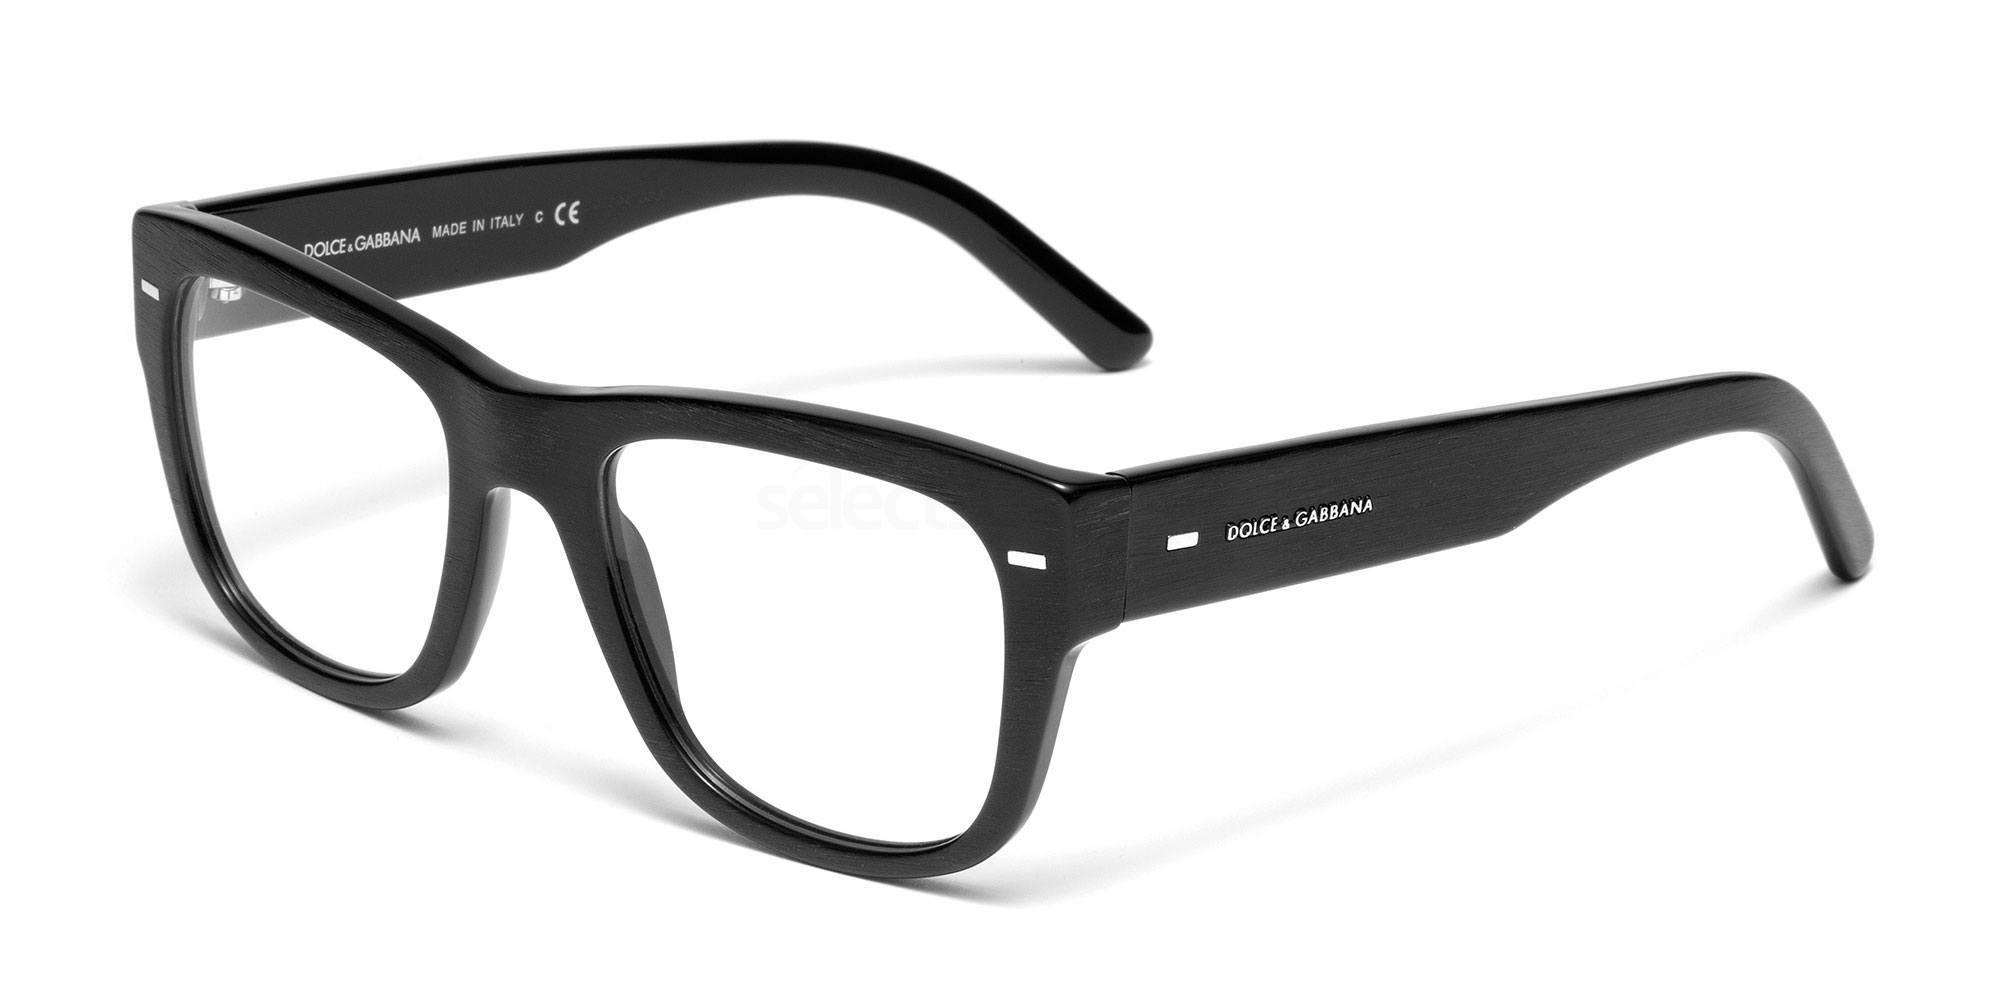 dolce-&-gabbana-dg3195-new-bond-street-glasses